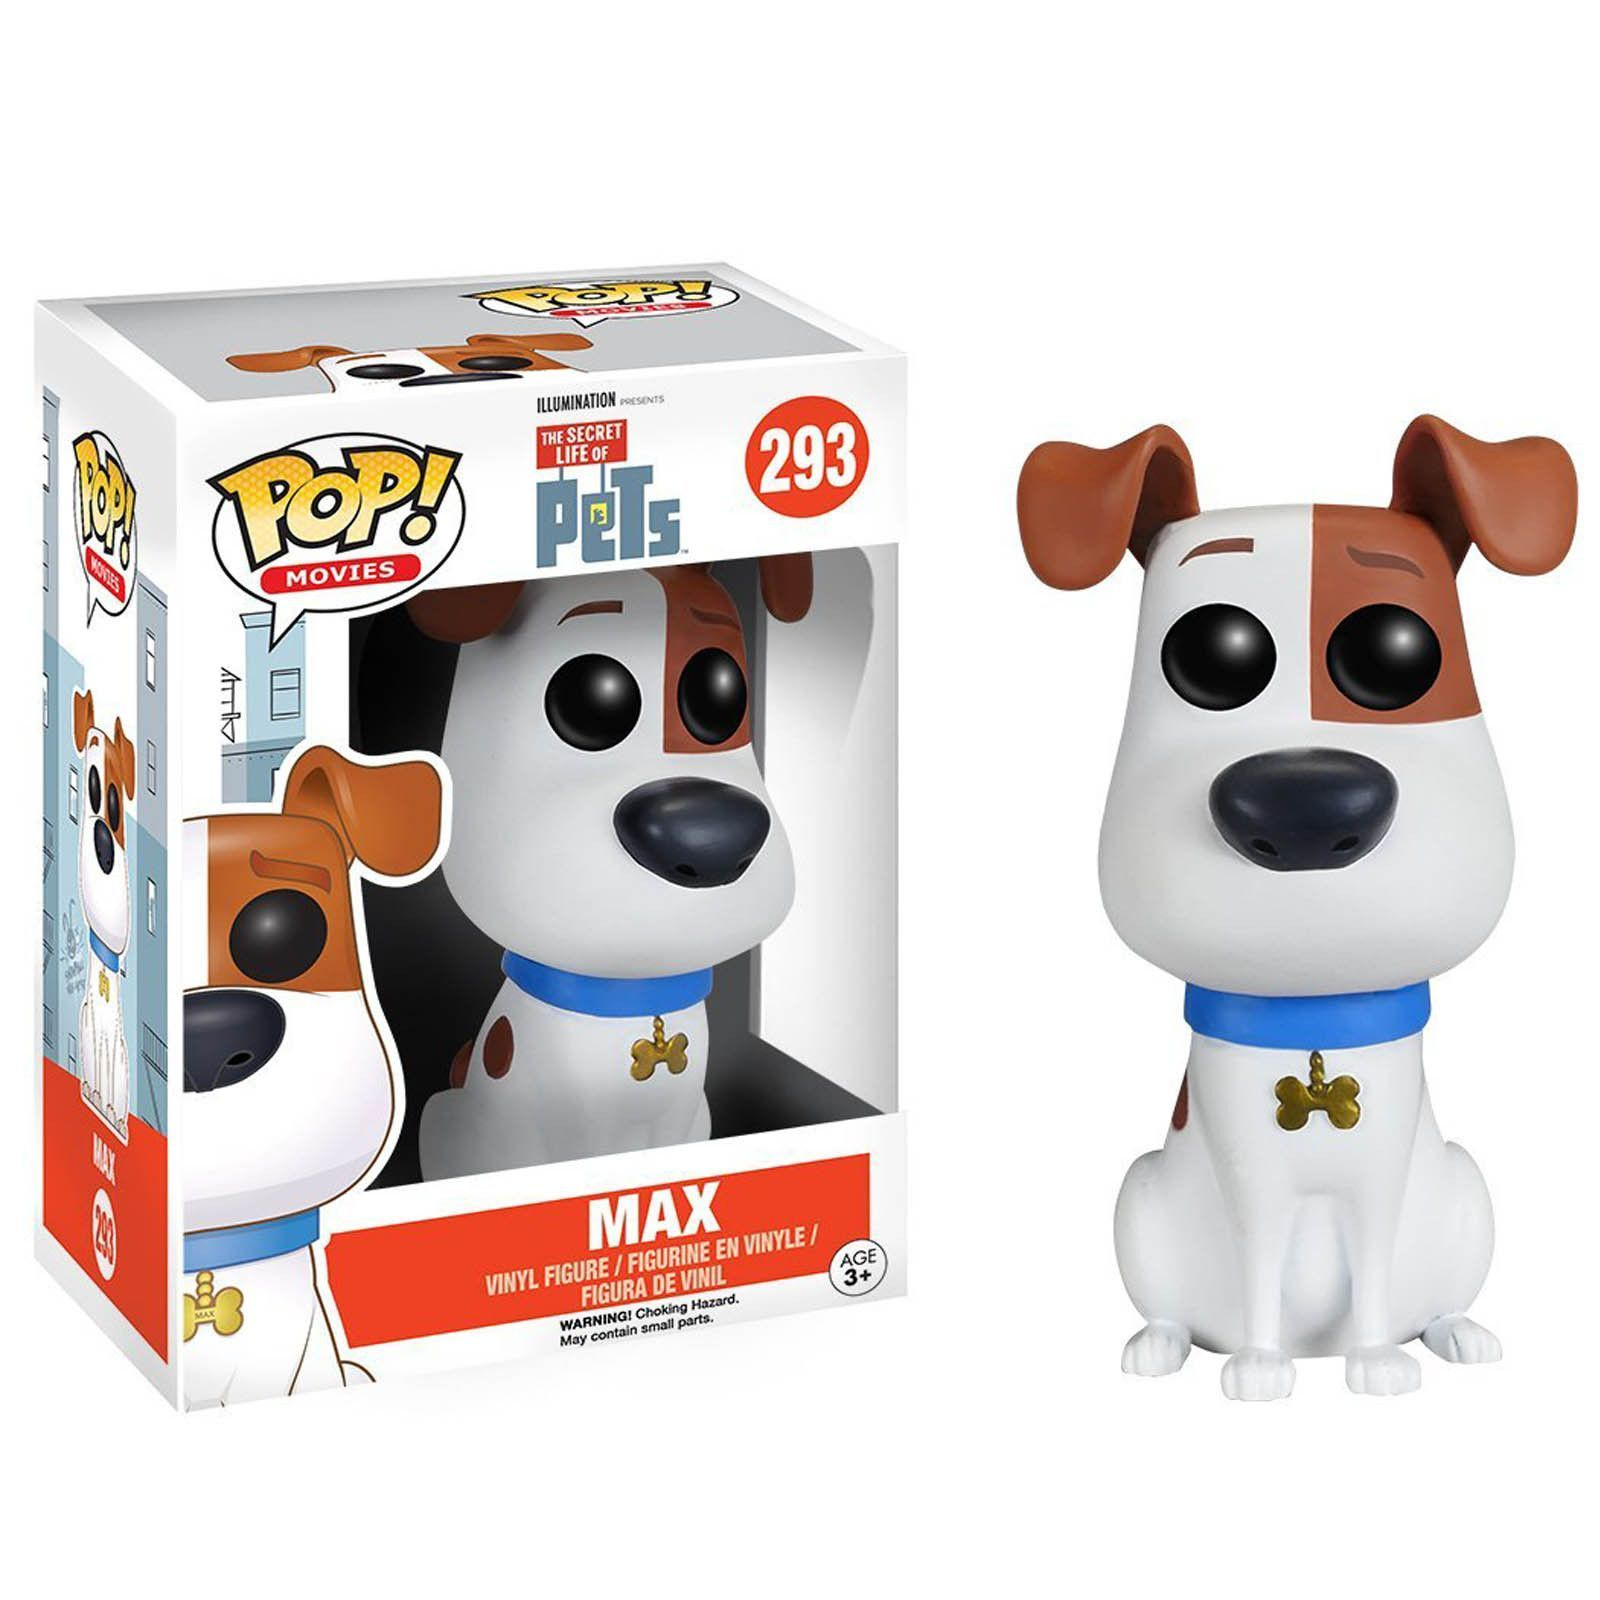 This Is A Funko Secret Life Of Pets Max Pop Vinyl Figure That S